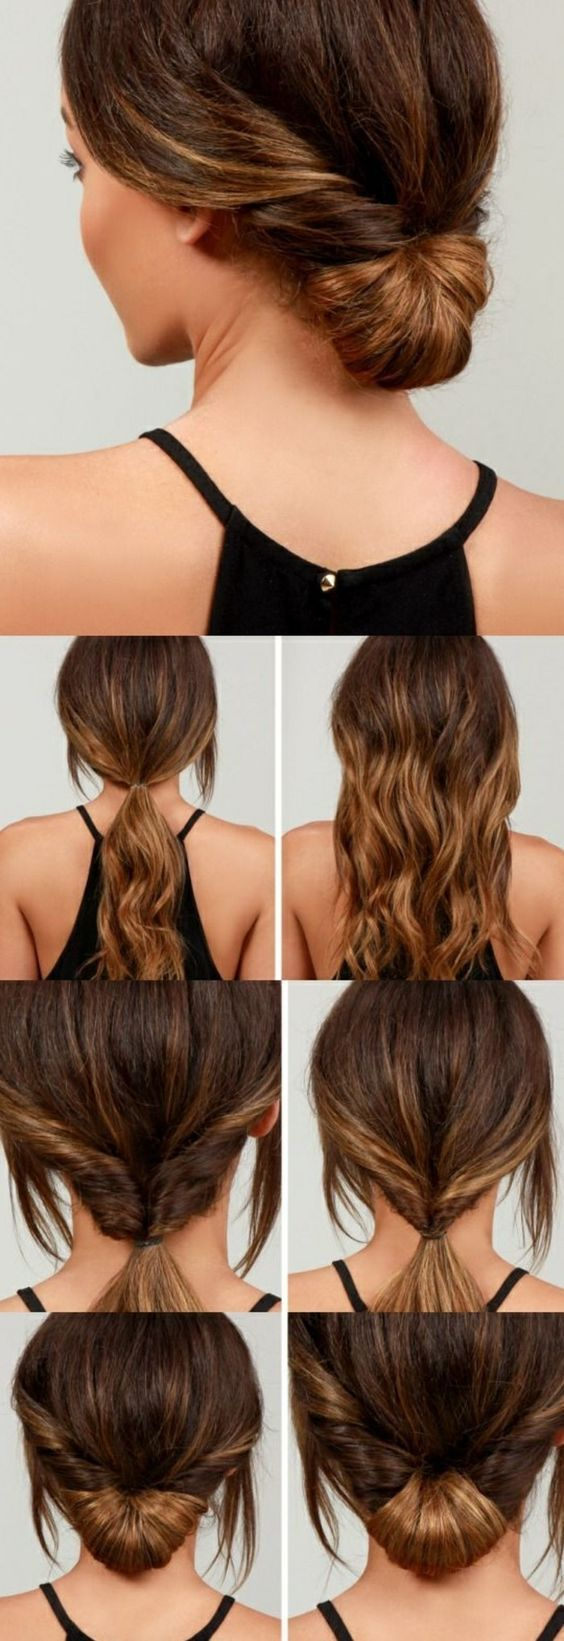 10 office hairstyles you should try if you are a lazy girl